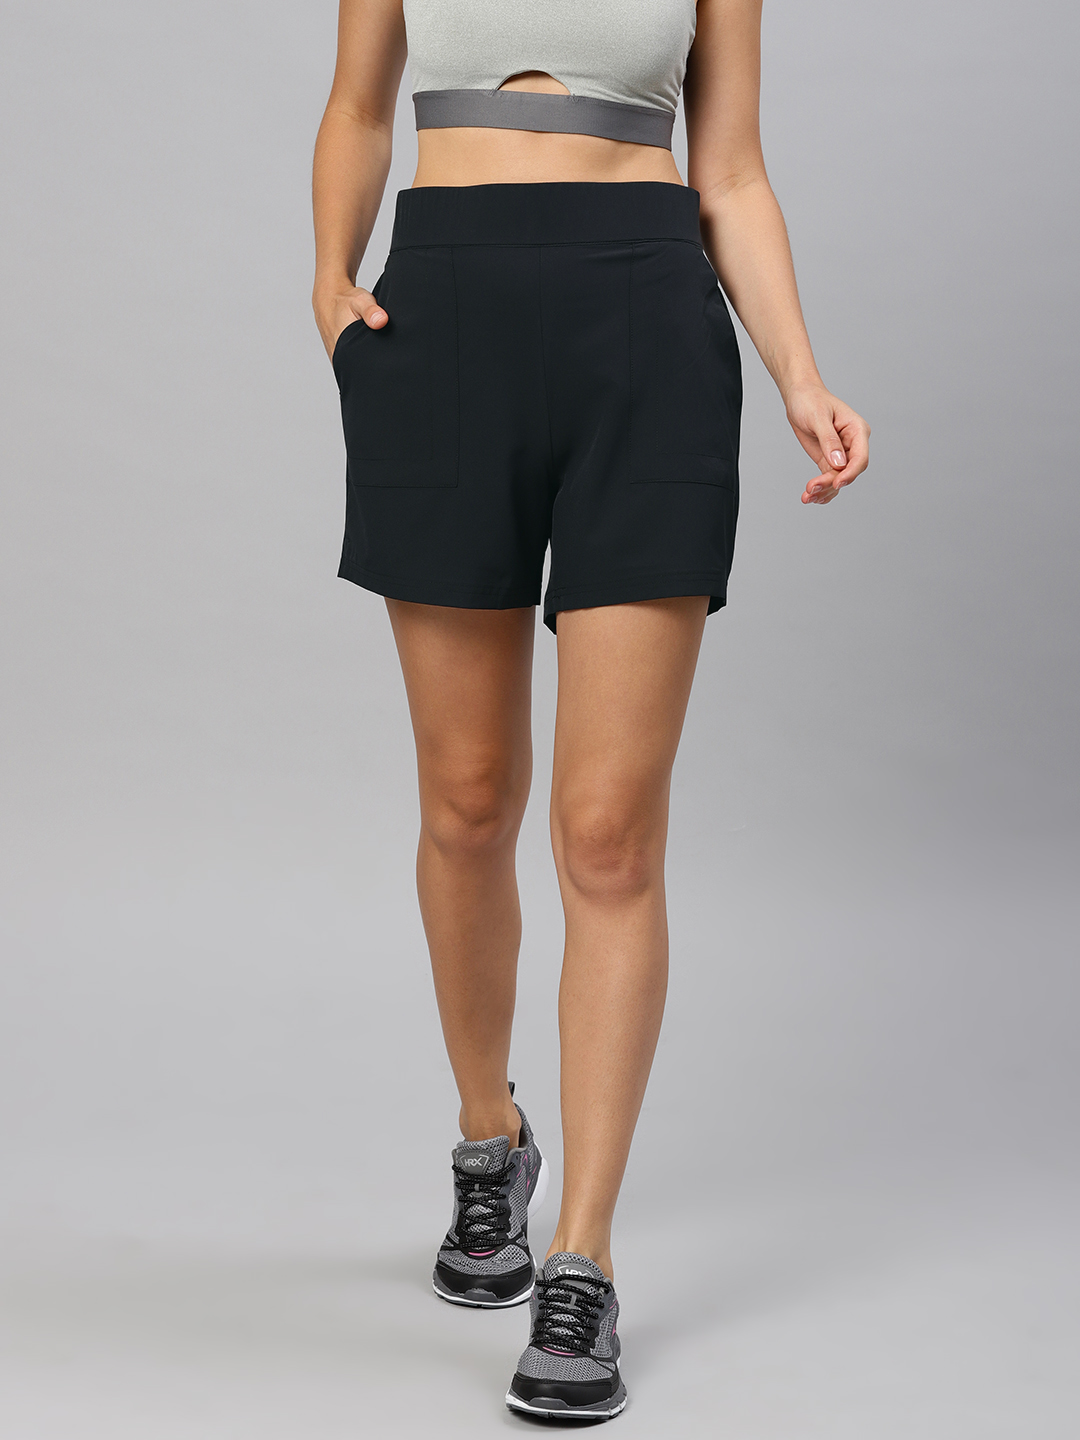 HRX by Hrithik Roshan Women Black Solid Regular Fit Sports Shorts Price in India